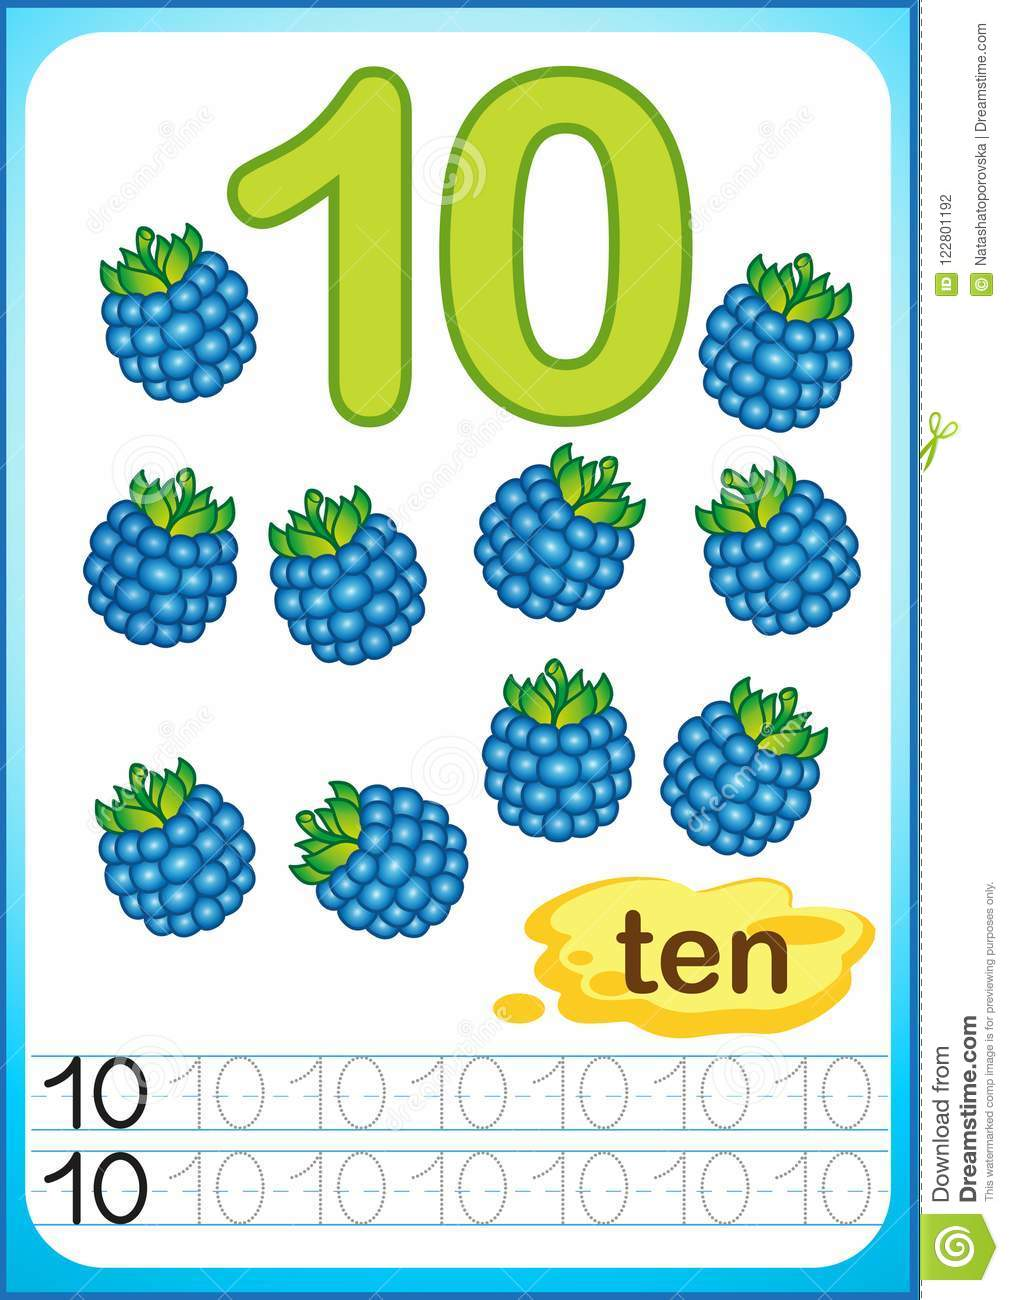 Printable Worksheet For Kindergarten And Preschool. Harvest Of Ripe ...